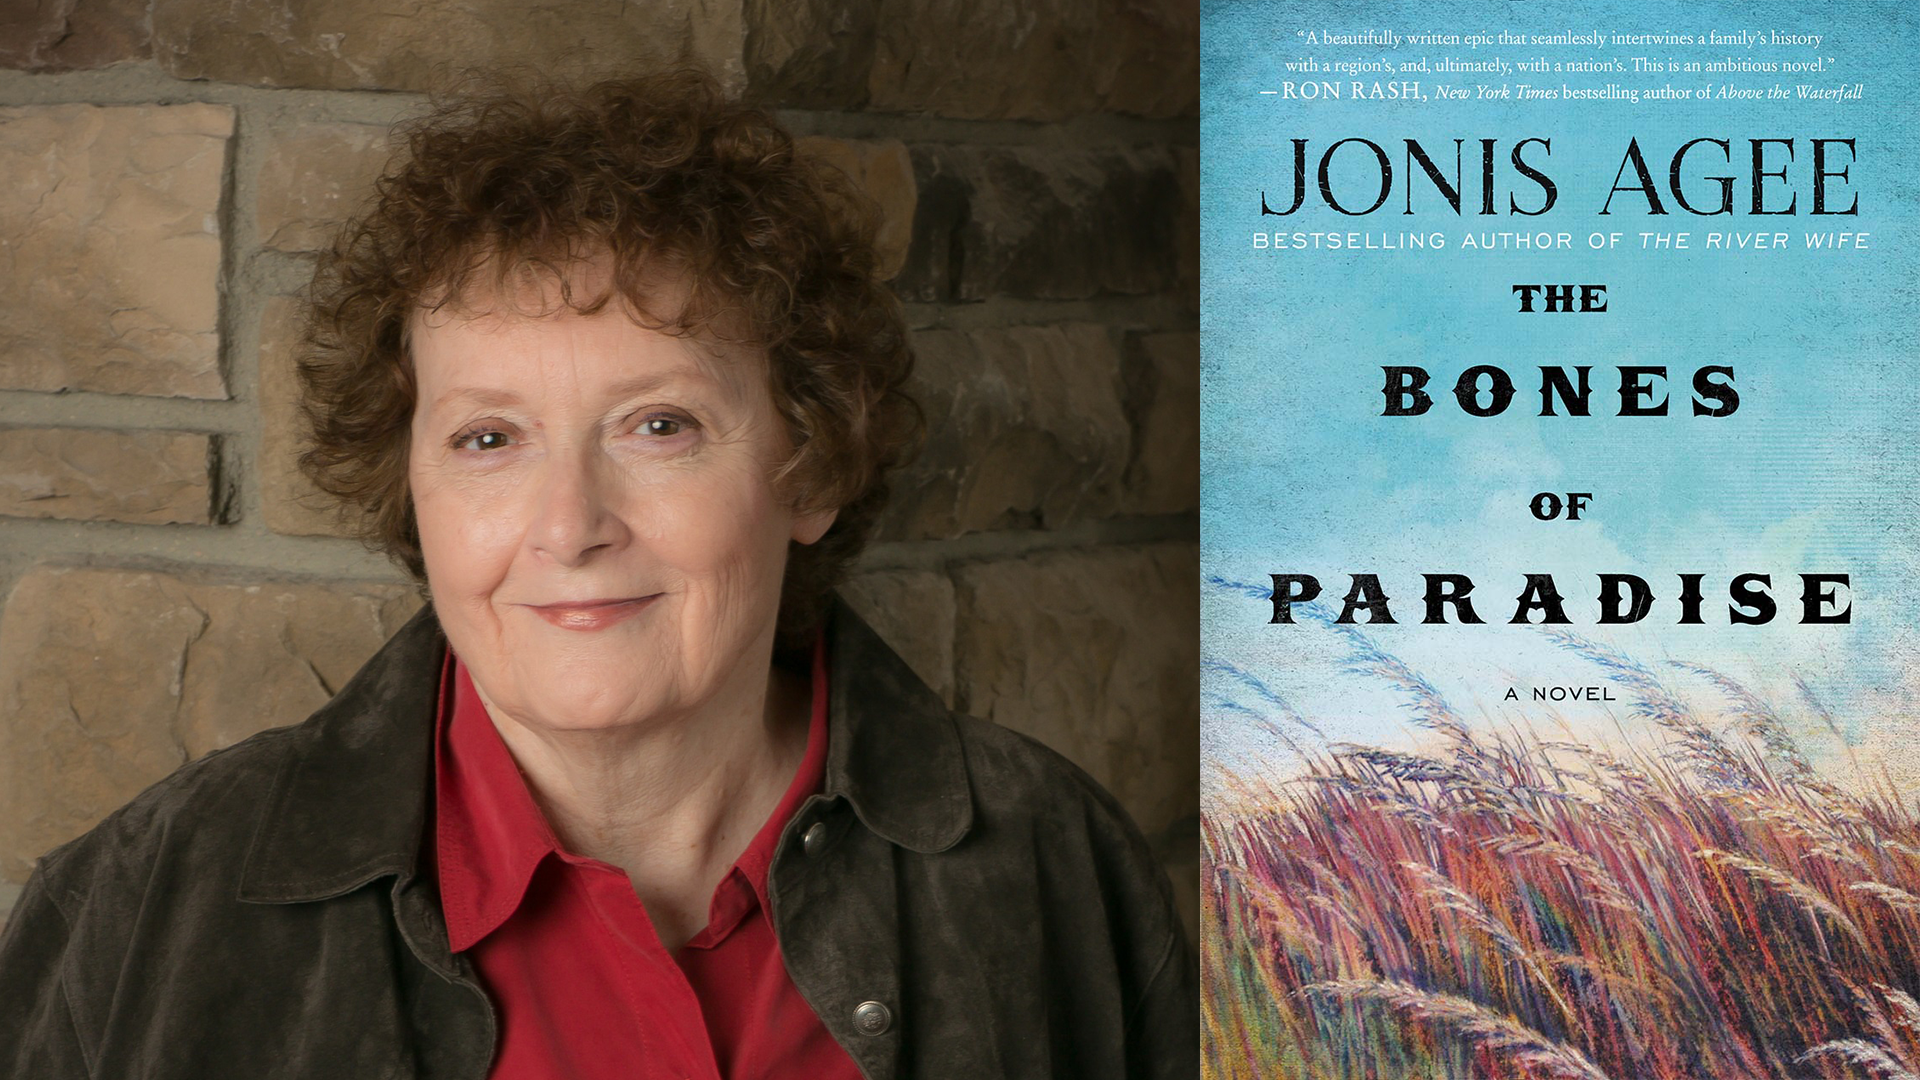 Jonis Agee and the cover of THE BONES OF PARADISE